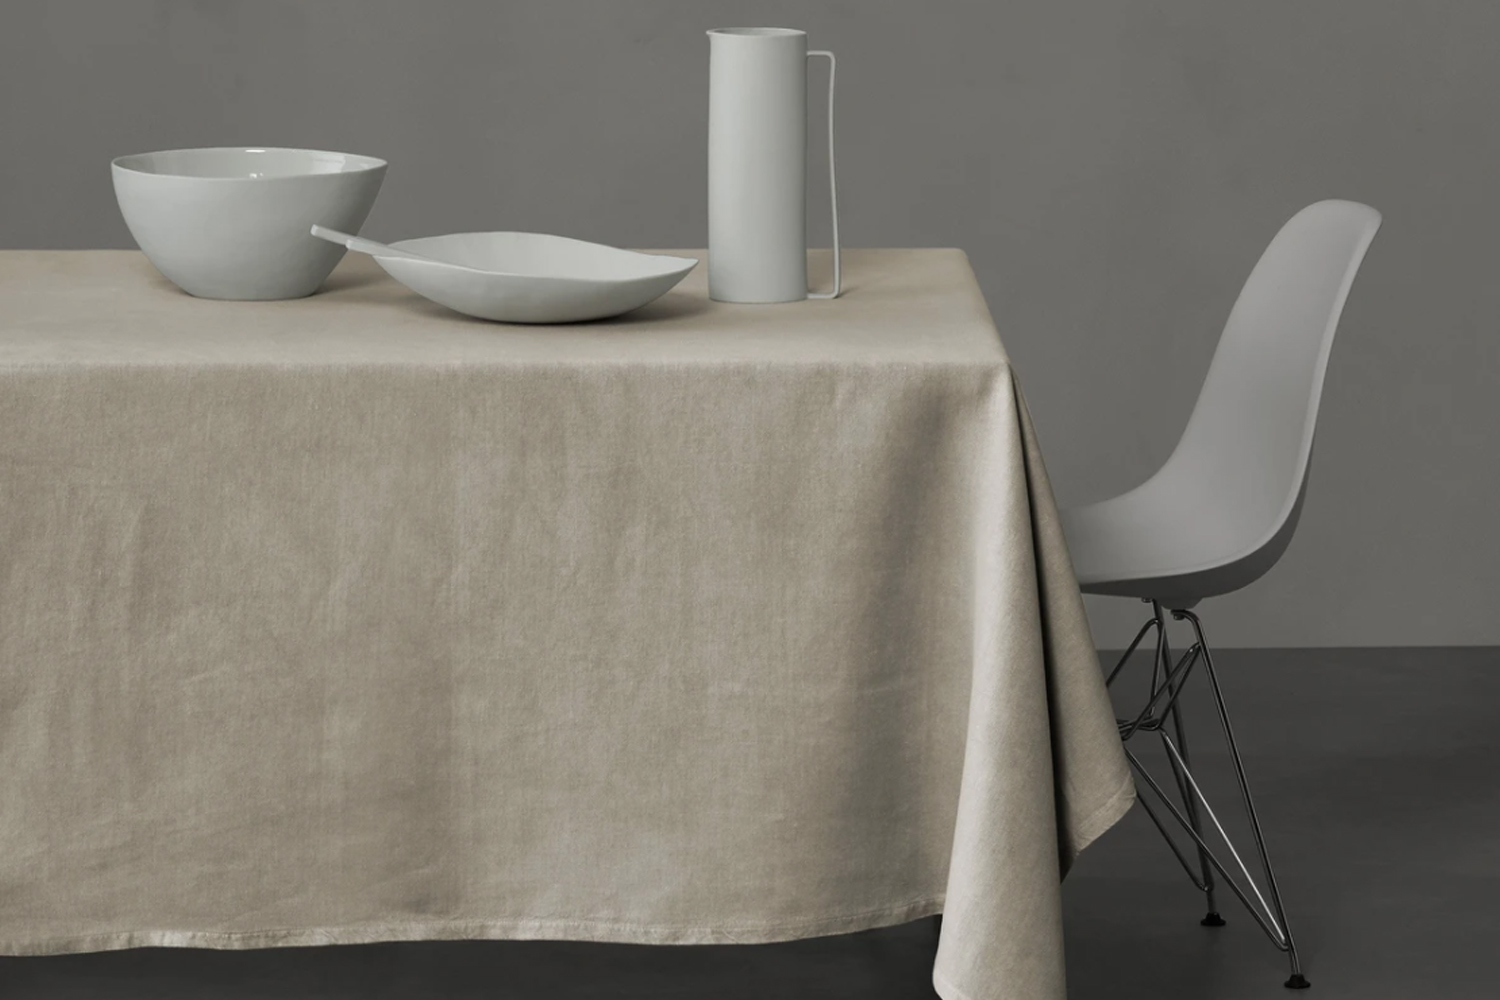 for a similar tablecloth to the linens seen on the dining room tables, the soci 19